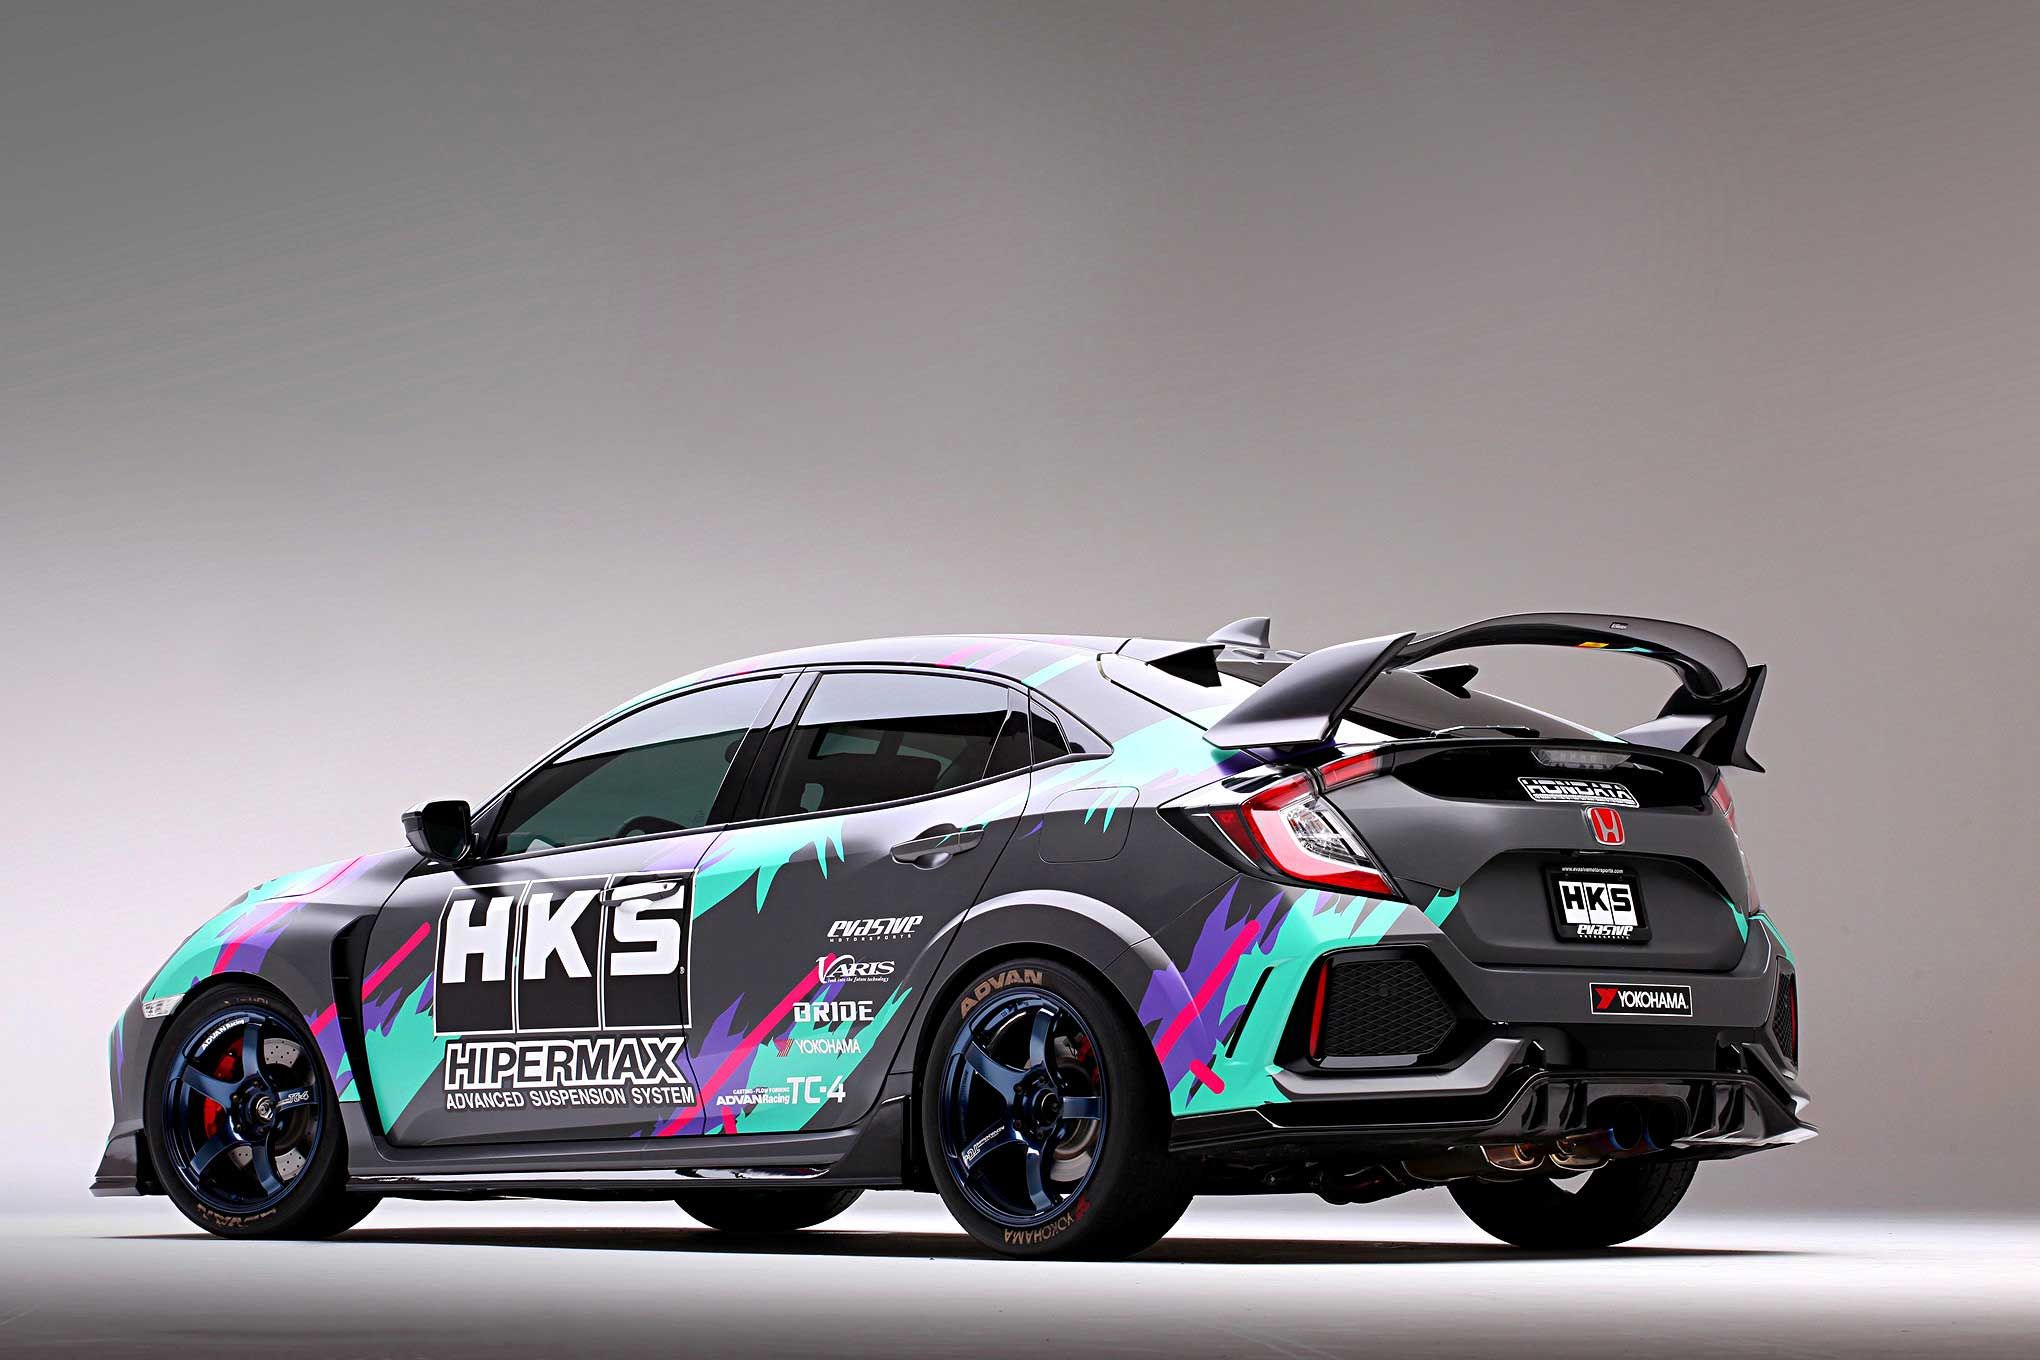 Already A Capaple Platform From The Factory The 2018 Honda Civic Type R Was The Ideal New Project And Development Car For Honda Civic Type R Honda Civic Honda